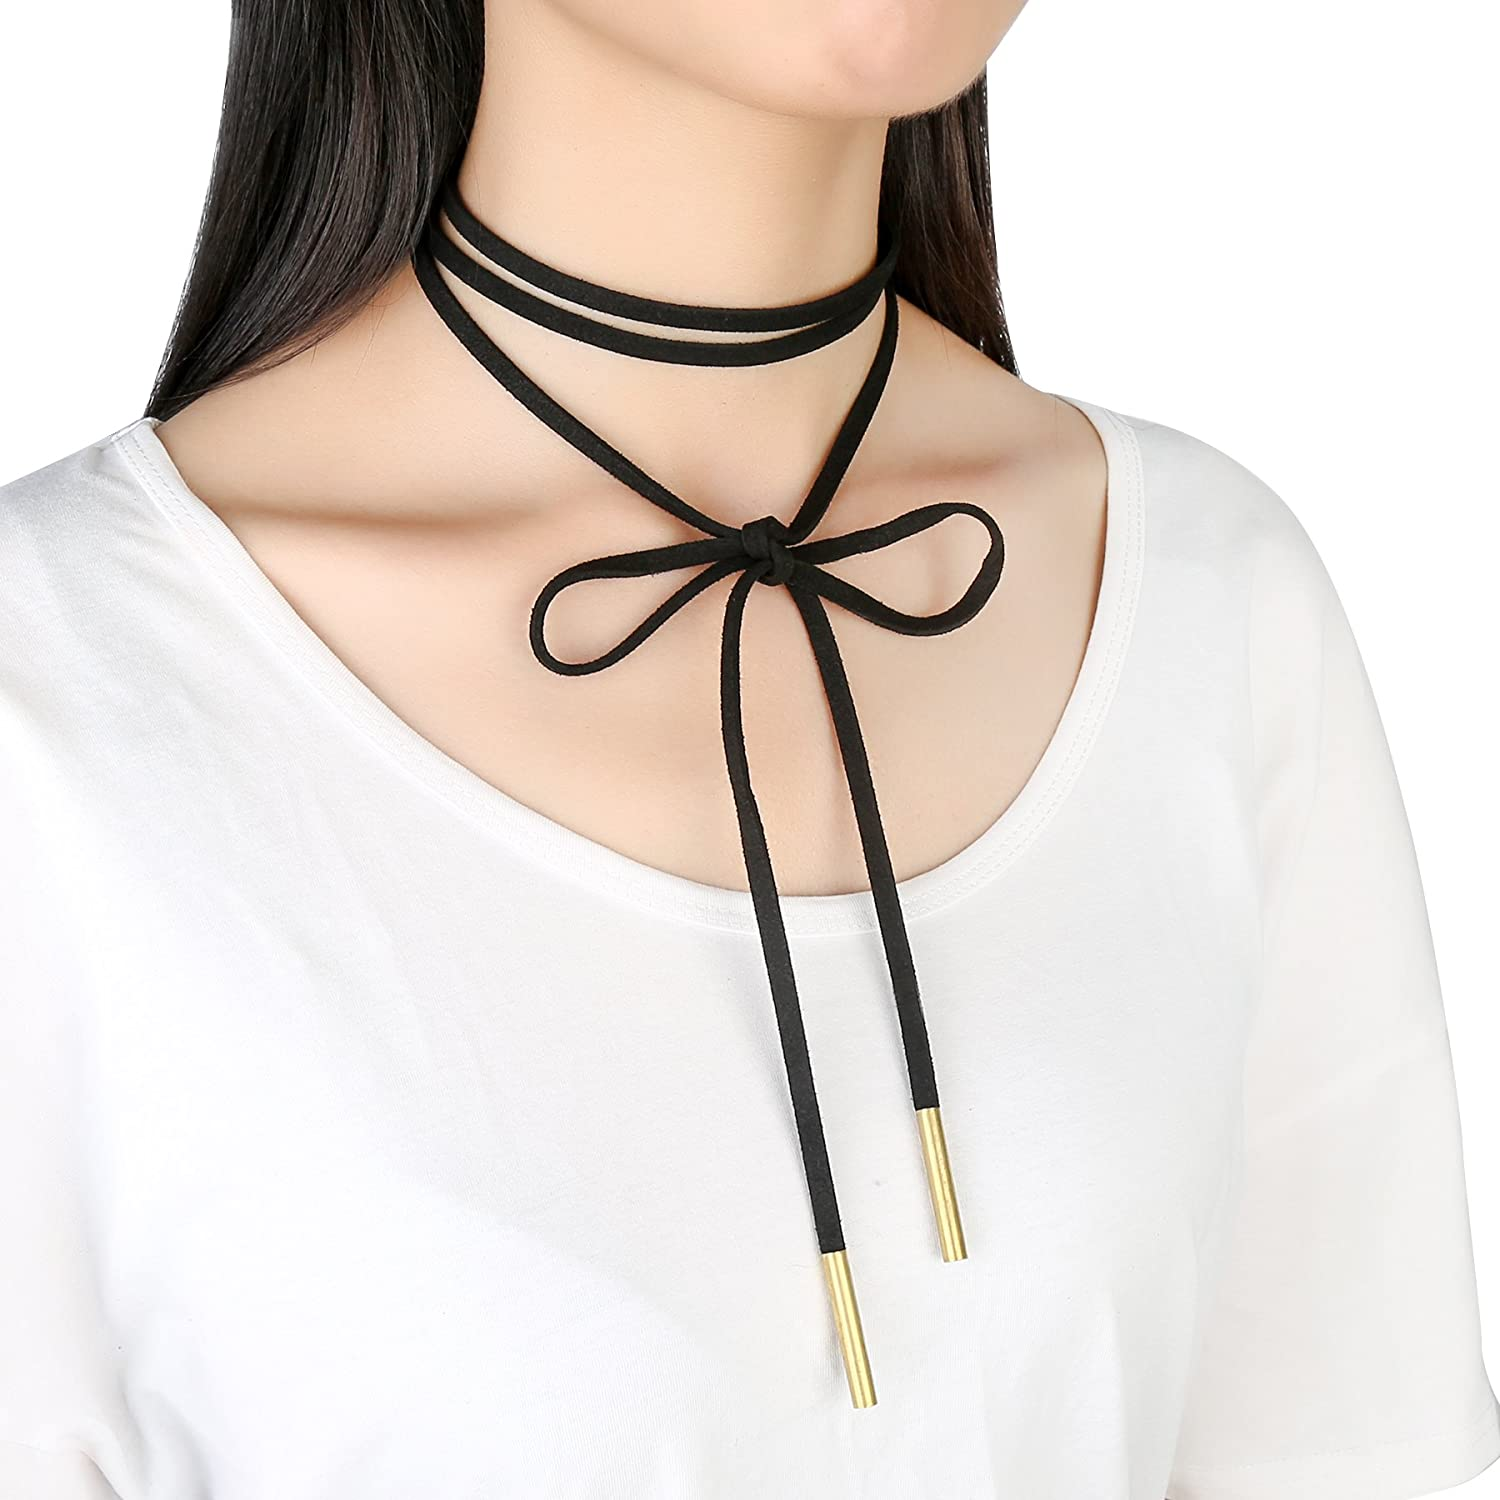 lariat jewelry necklace chain choker simple fashion ablaze wholesale v neck products necklaces